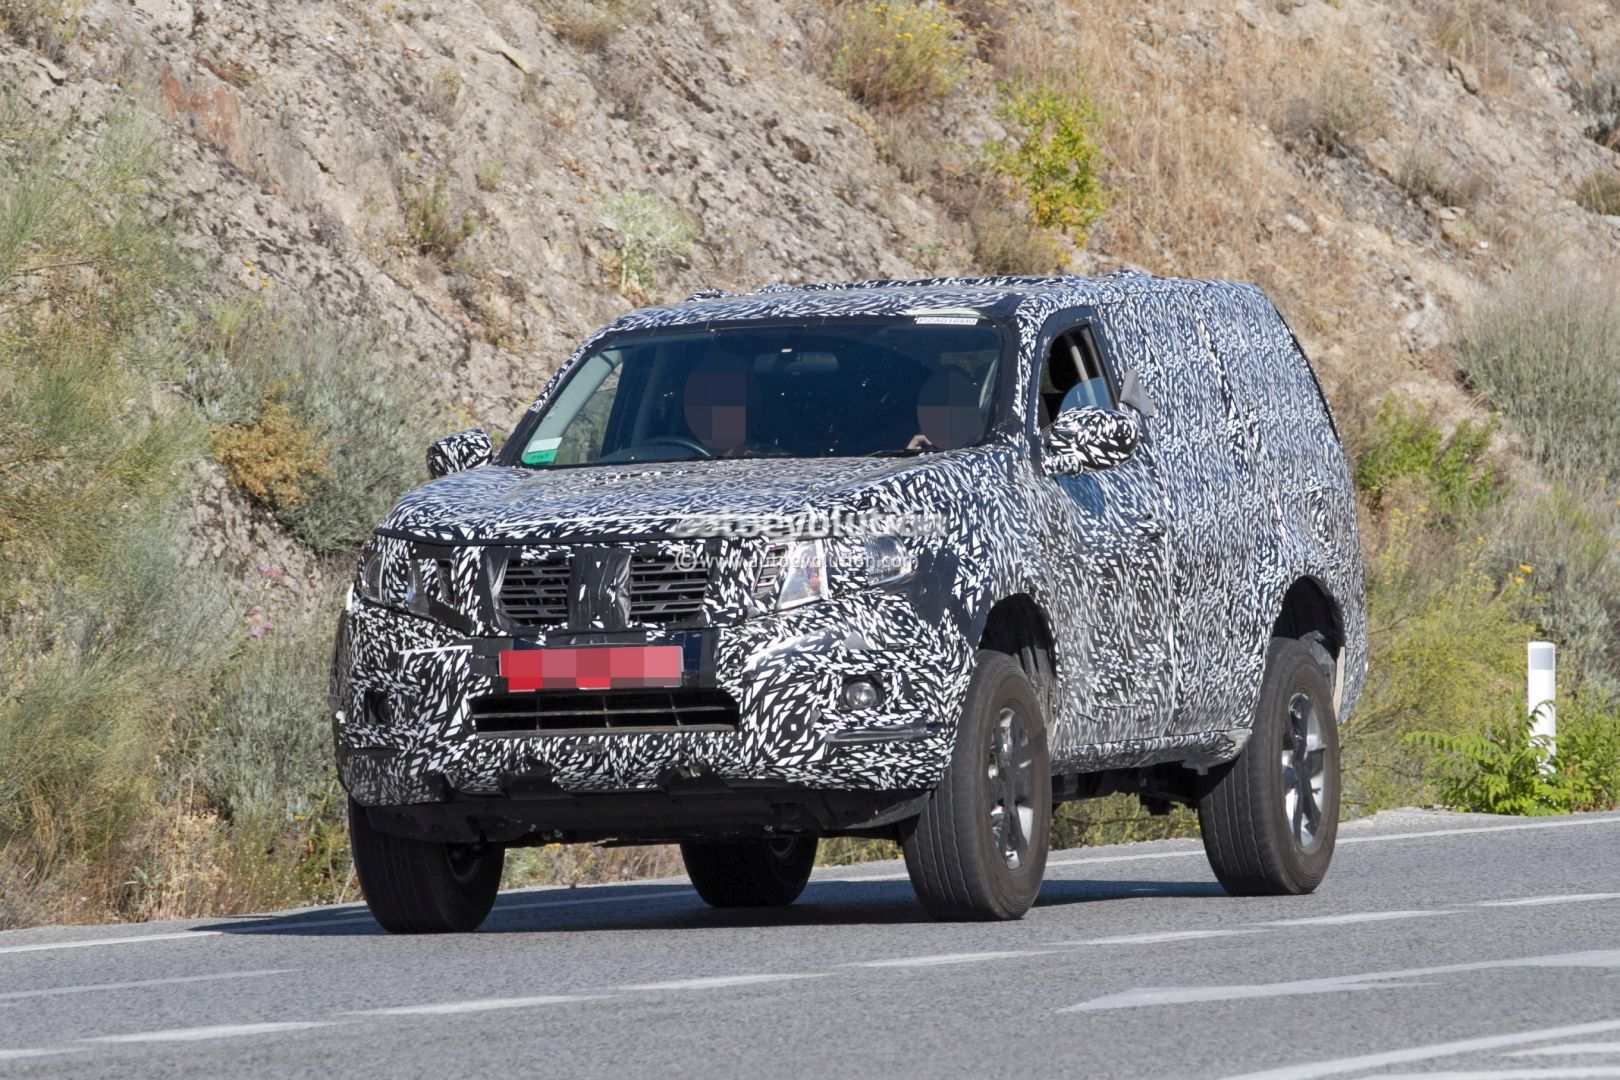 Next-Gen 2019 Nissan Pathfinder Spied, Shows Radical Front End